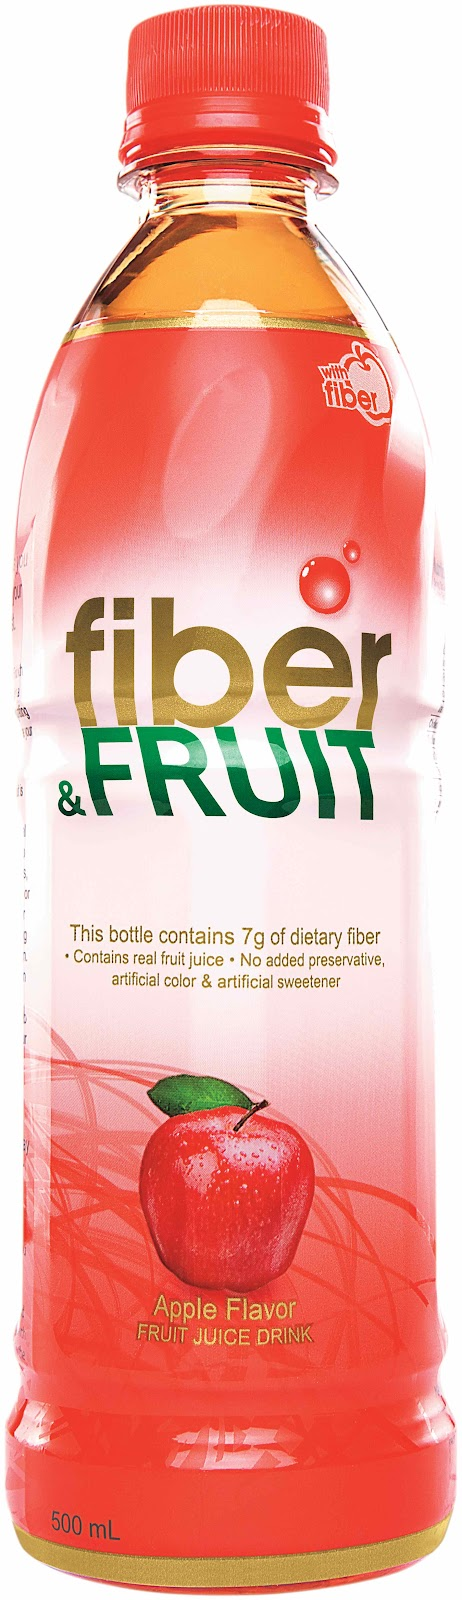 Does an apple have fiber